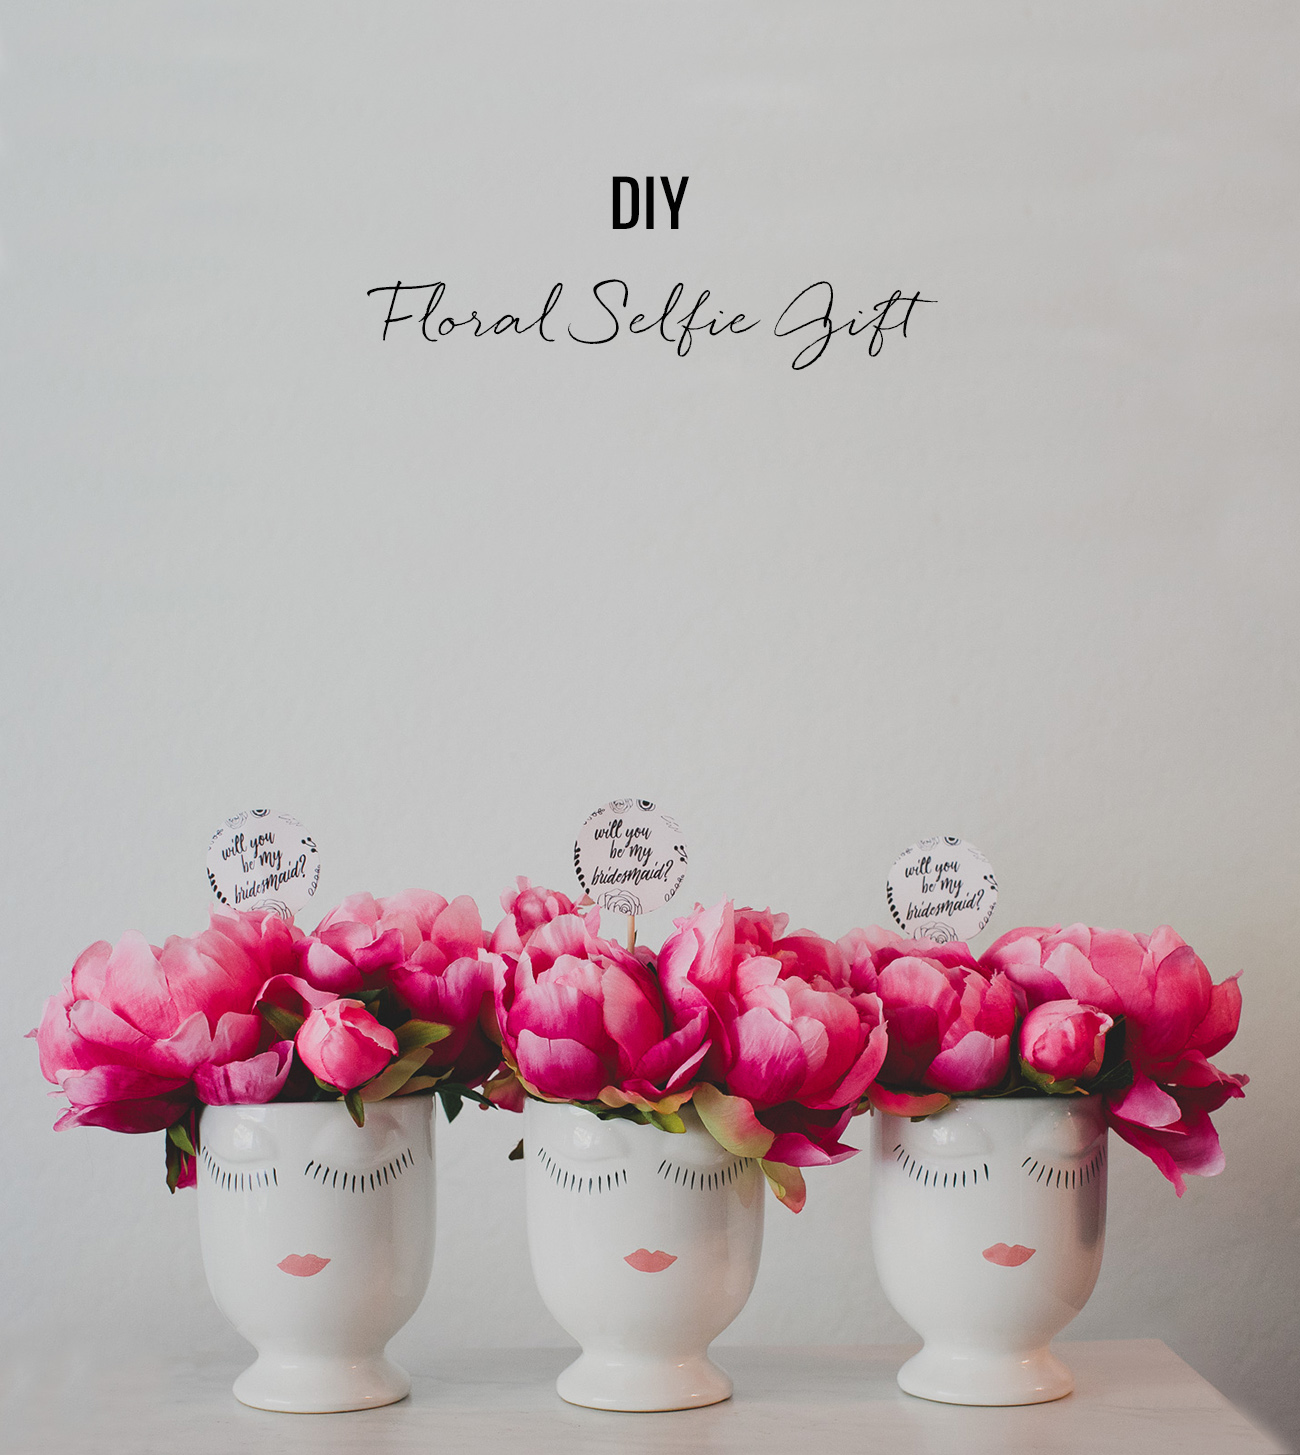 DIY Floral Selfie Gift with silk flowers